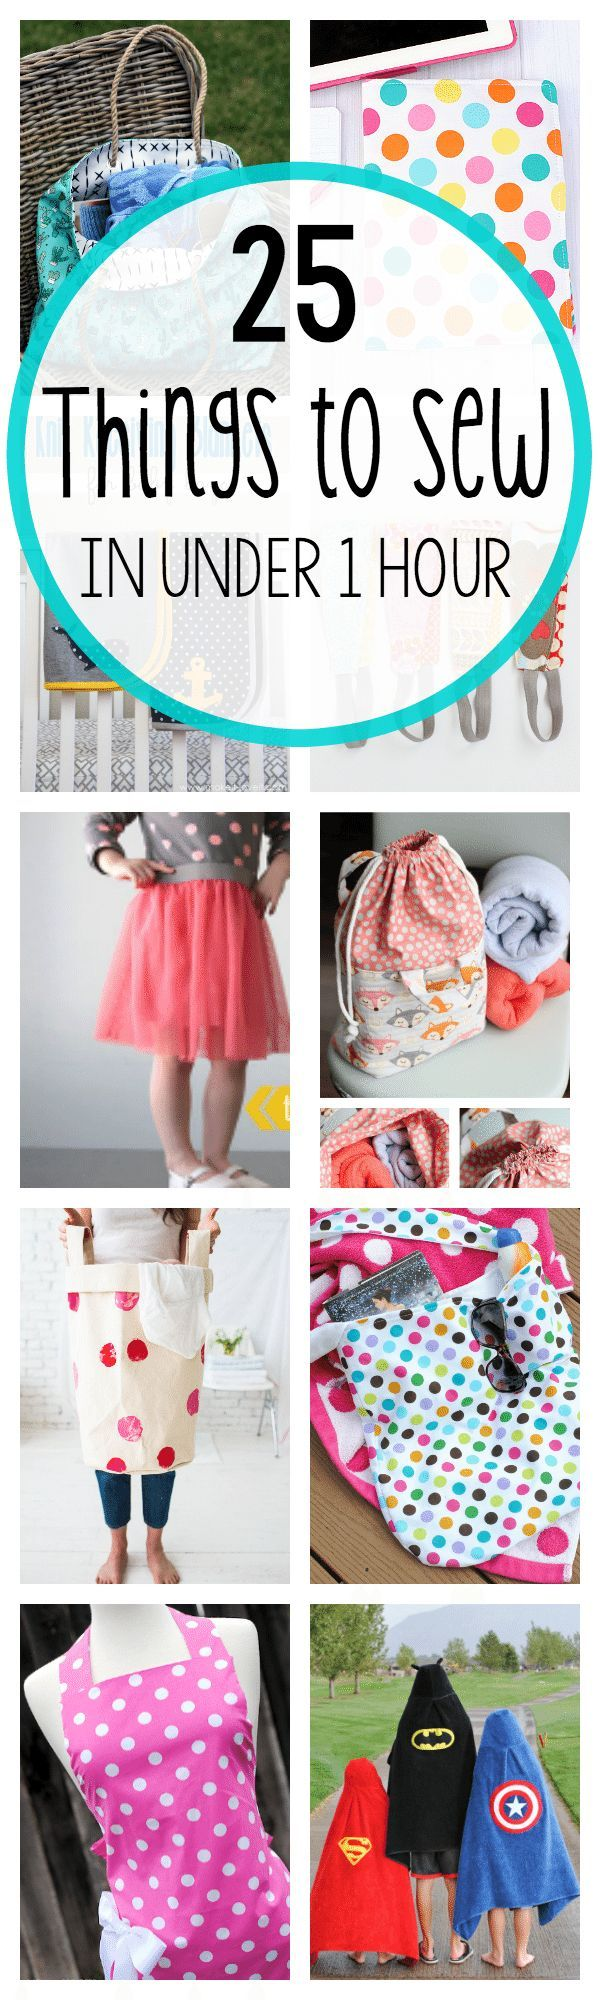 25thingstosewinunder1hourcollage free printable sewing patterns here are 25 quick and easy sewing projects that can be sewn in an hour or less easy sewing patterns for all skill levels including beginners jeuxipadfo Gallery